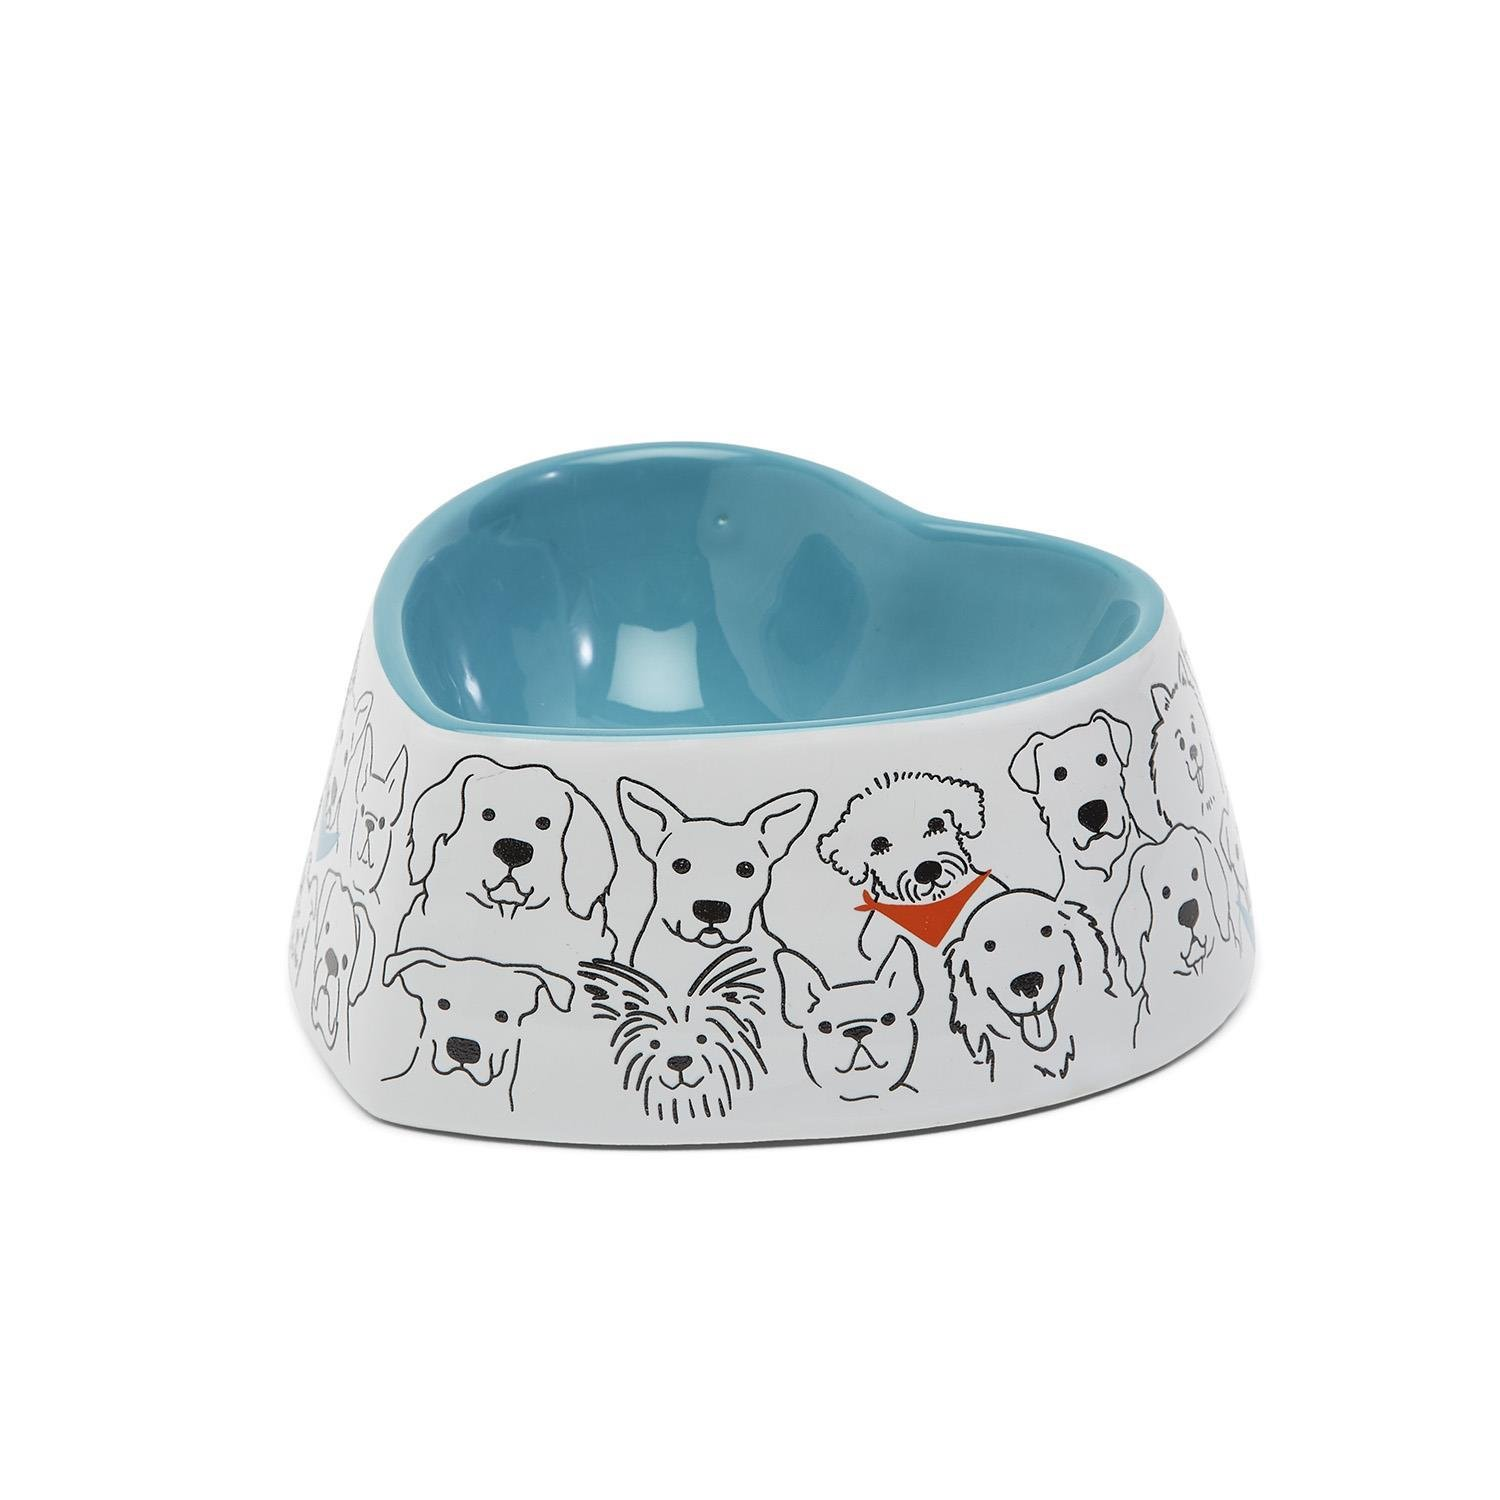 Two's Company Woof It Down Dog Bowl